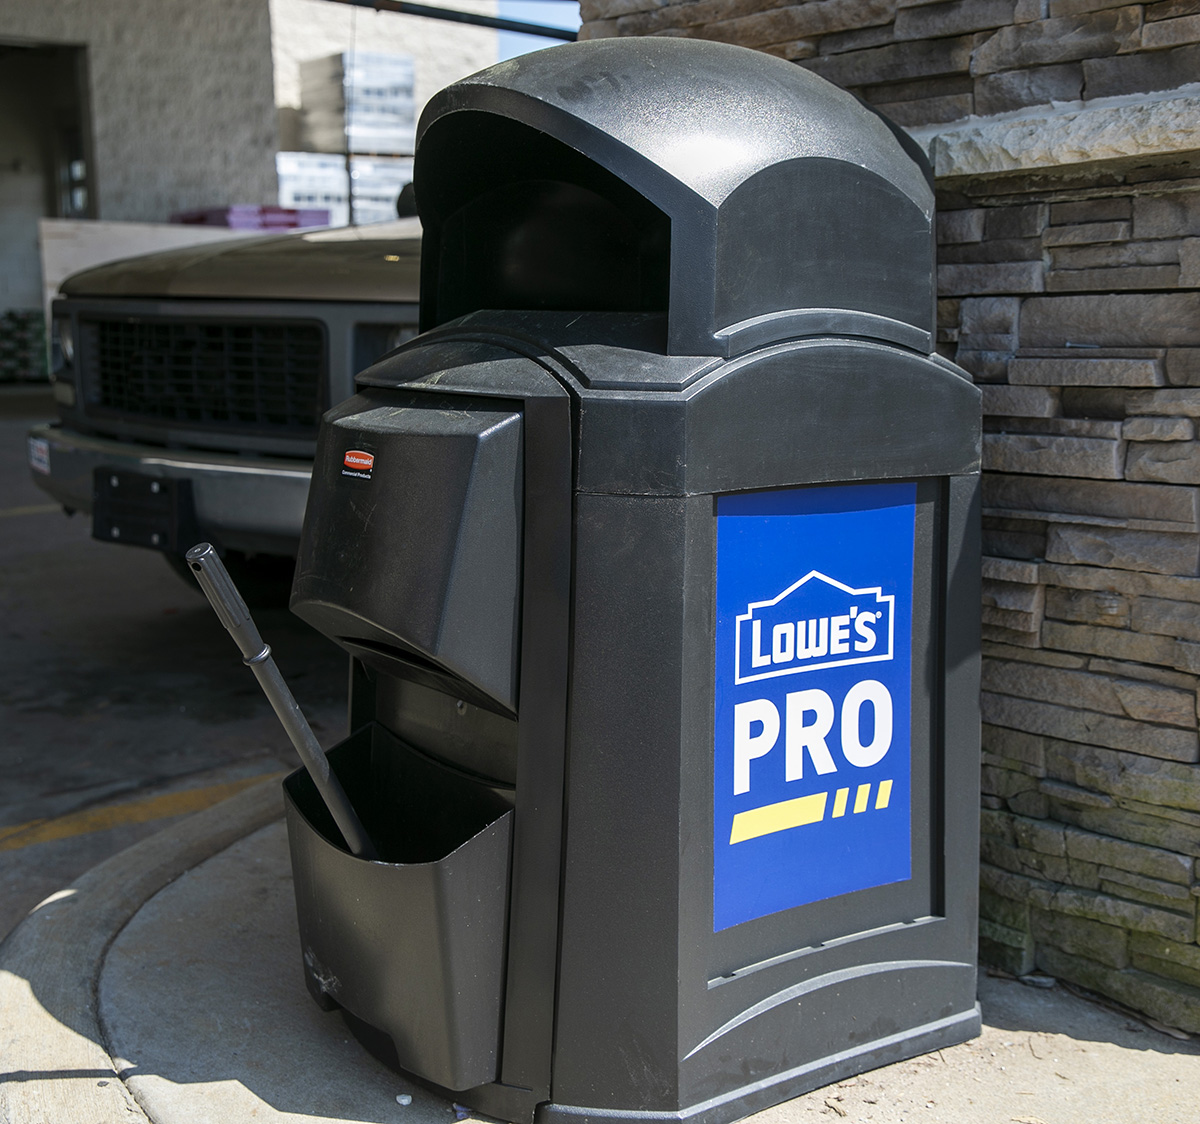 Windshield cleaning stations will become available this year.